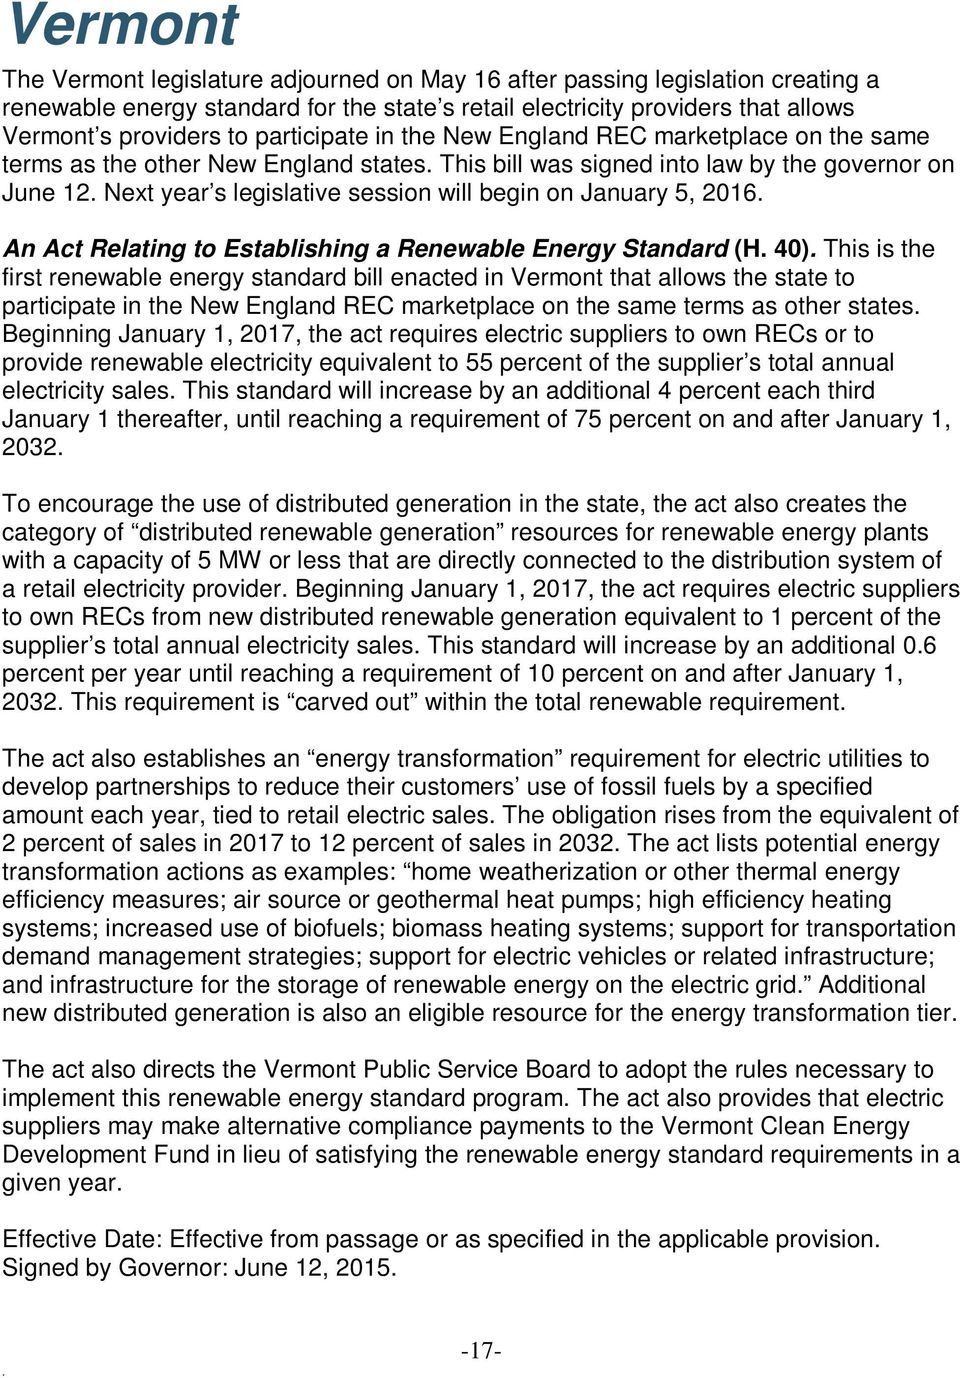 January 5, 2016 An Act Relating to Establishing a Renewable Energy Standard (H 40) This is the first renewable energy standard bill enacted in Vermont that allows the state to participate in the New